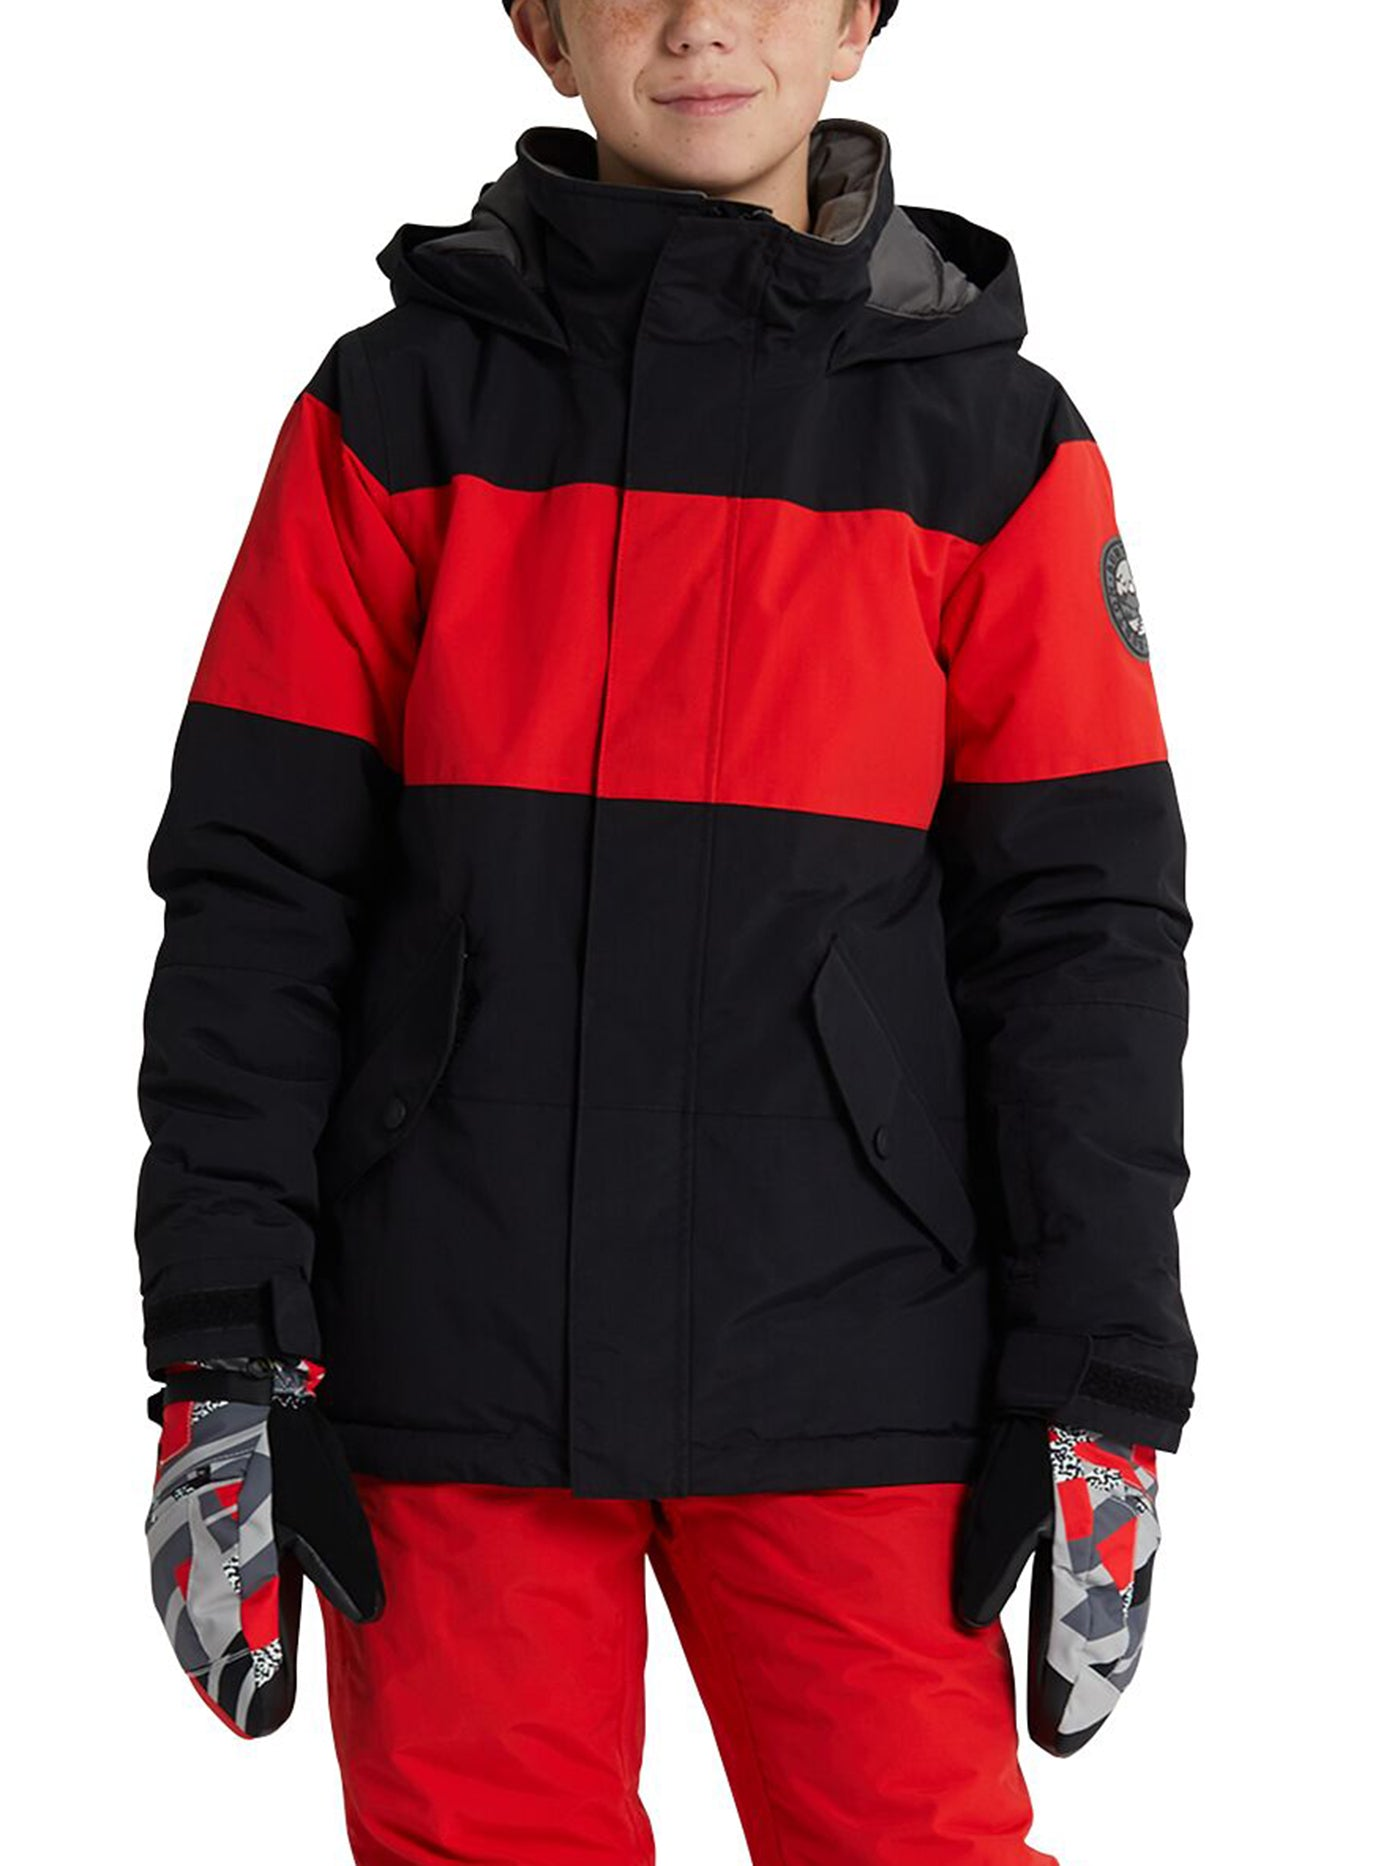 Symbol Insulated Jacket (Youth 7-14)